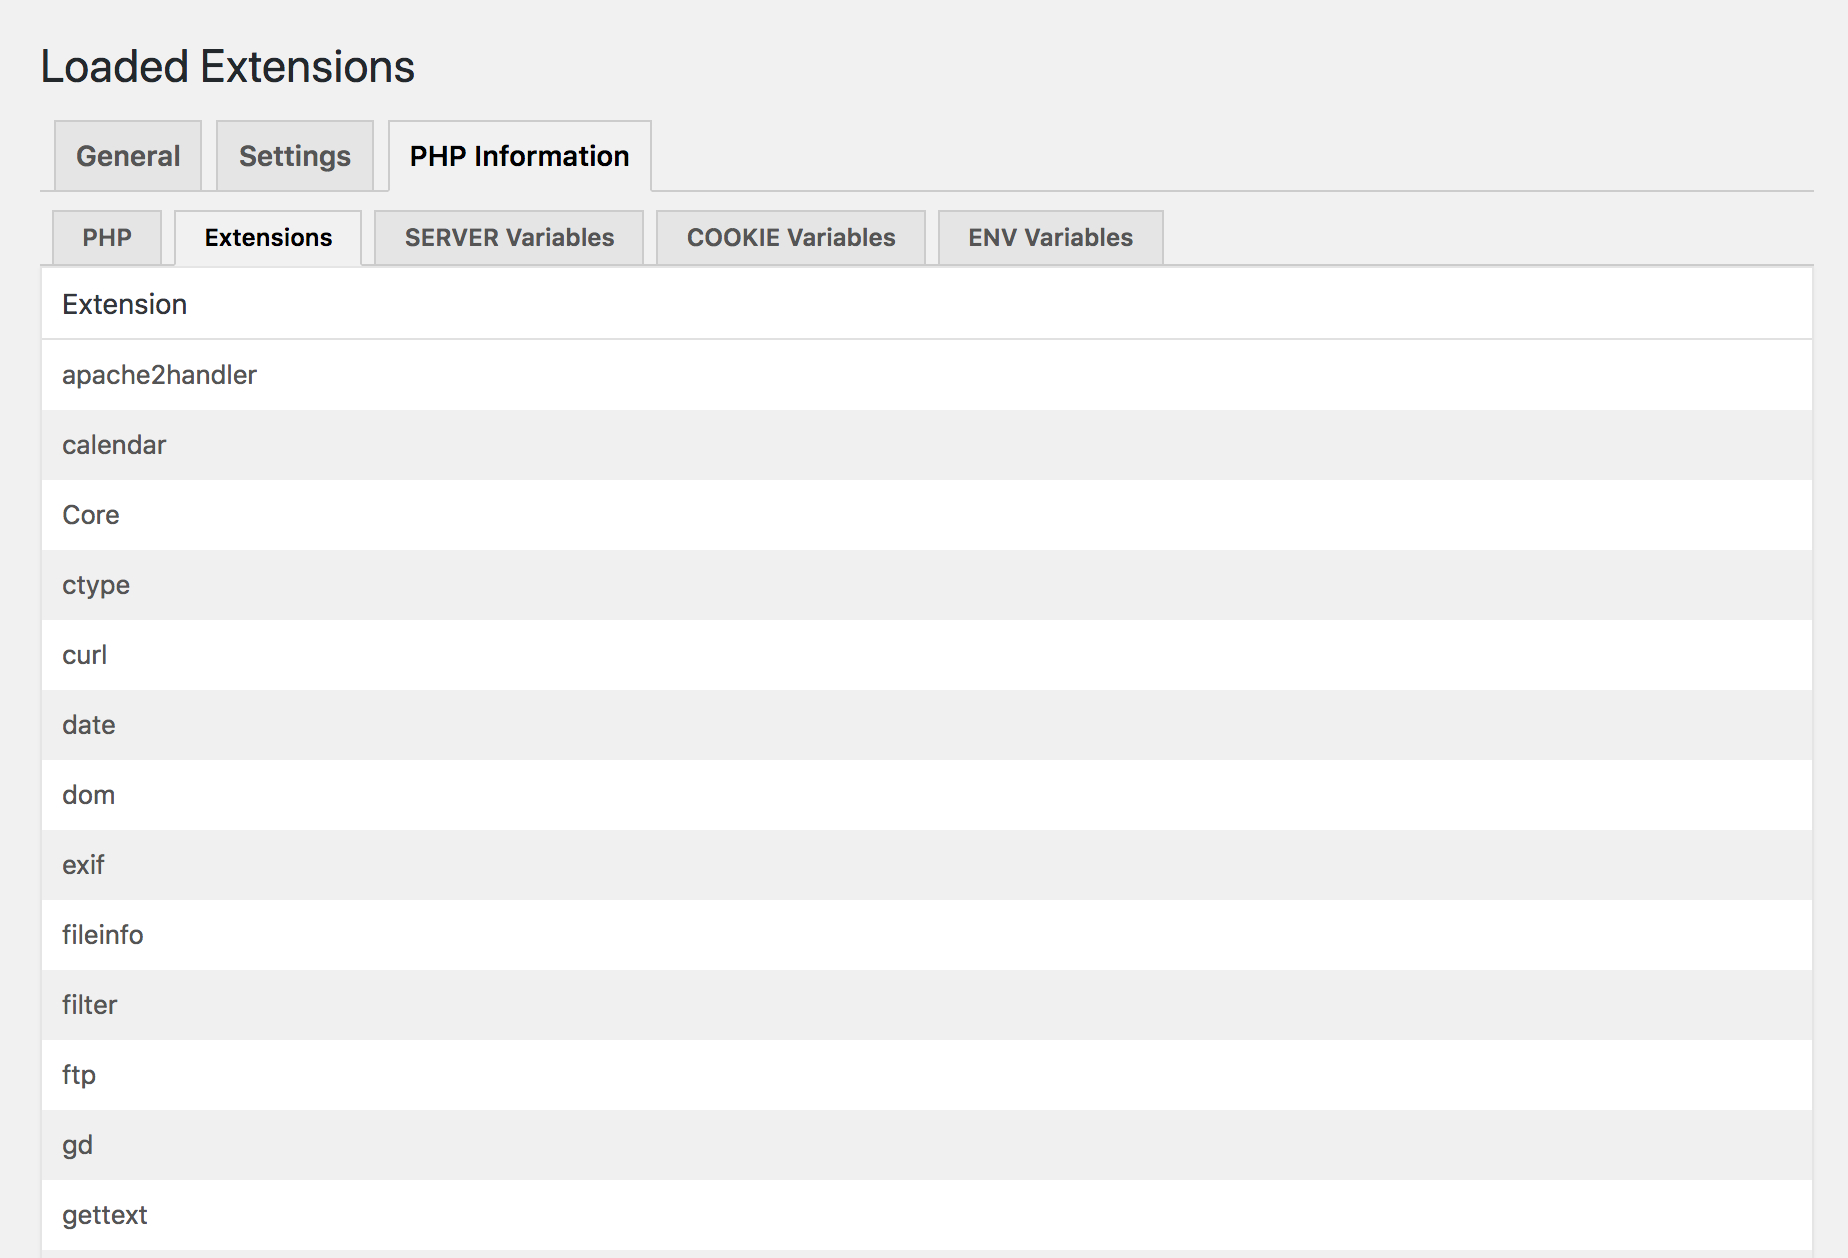 Listing of all enabled PHP extensions.